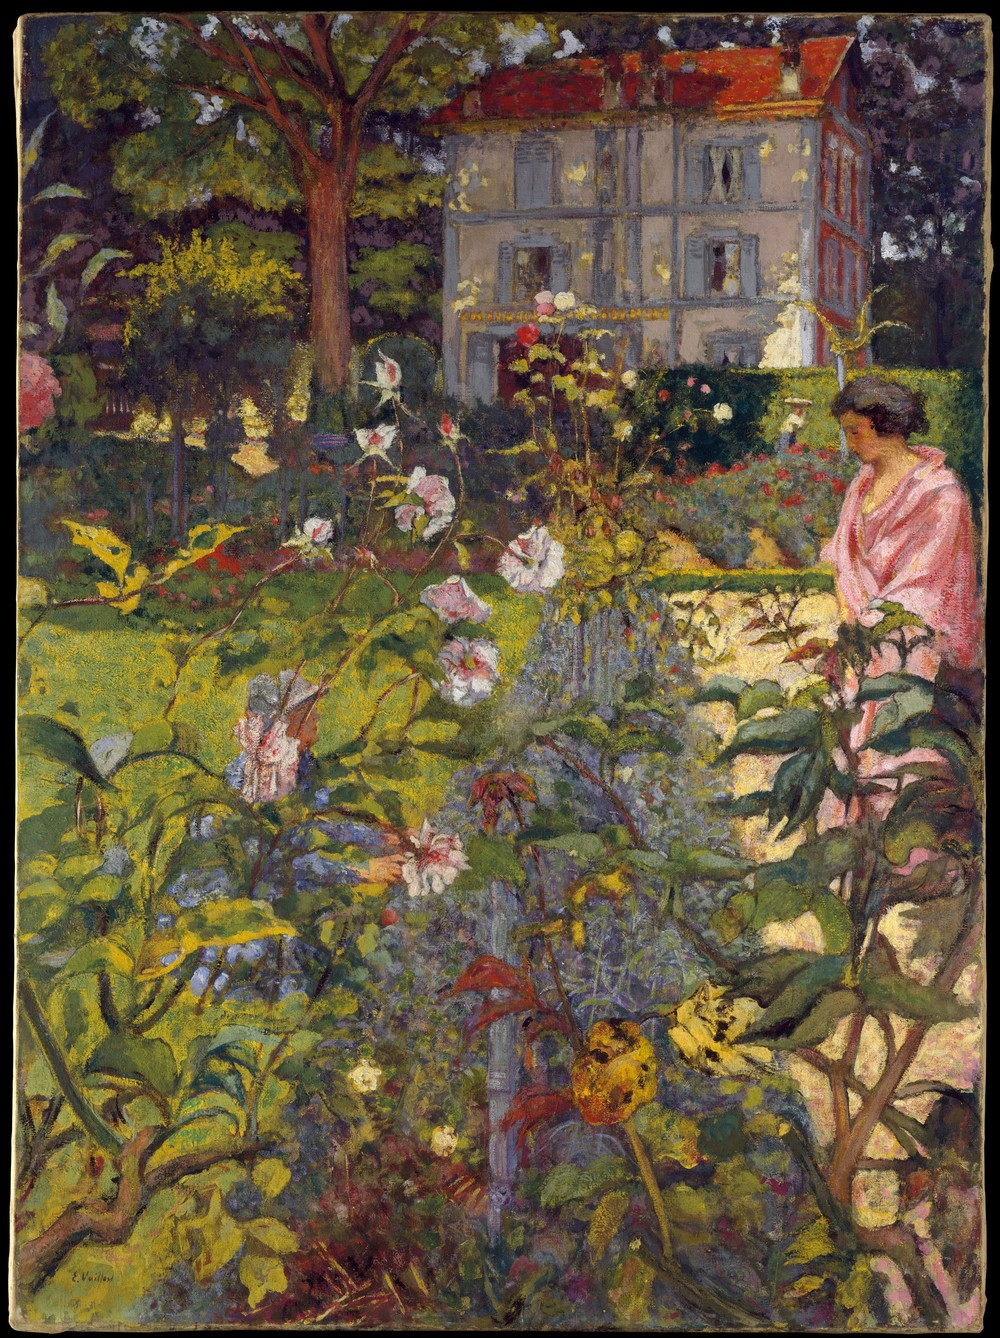 Edouard Vuillard,  Garden at Vaucresson,  1920, Distemper on canvas